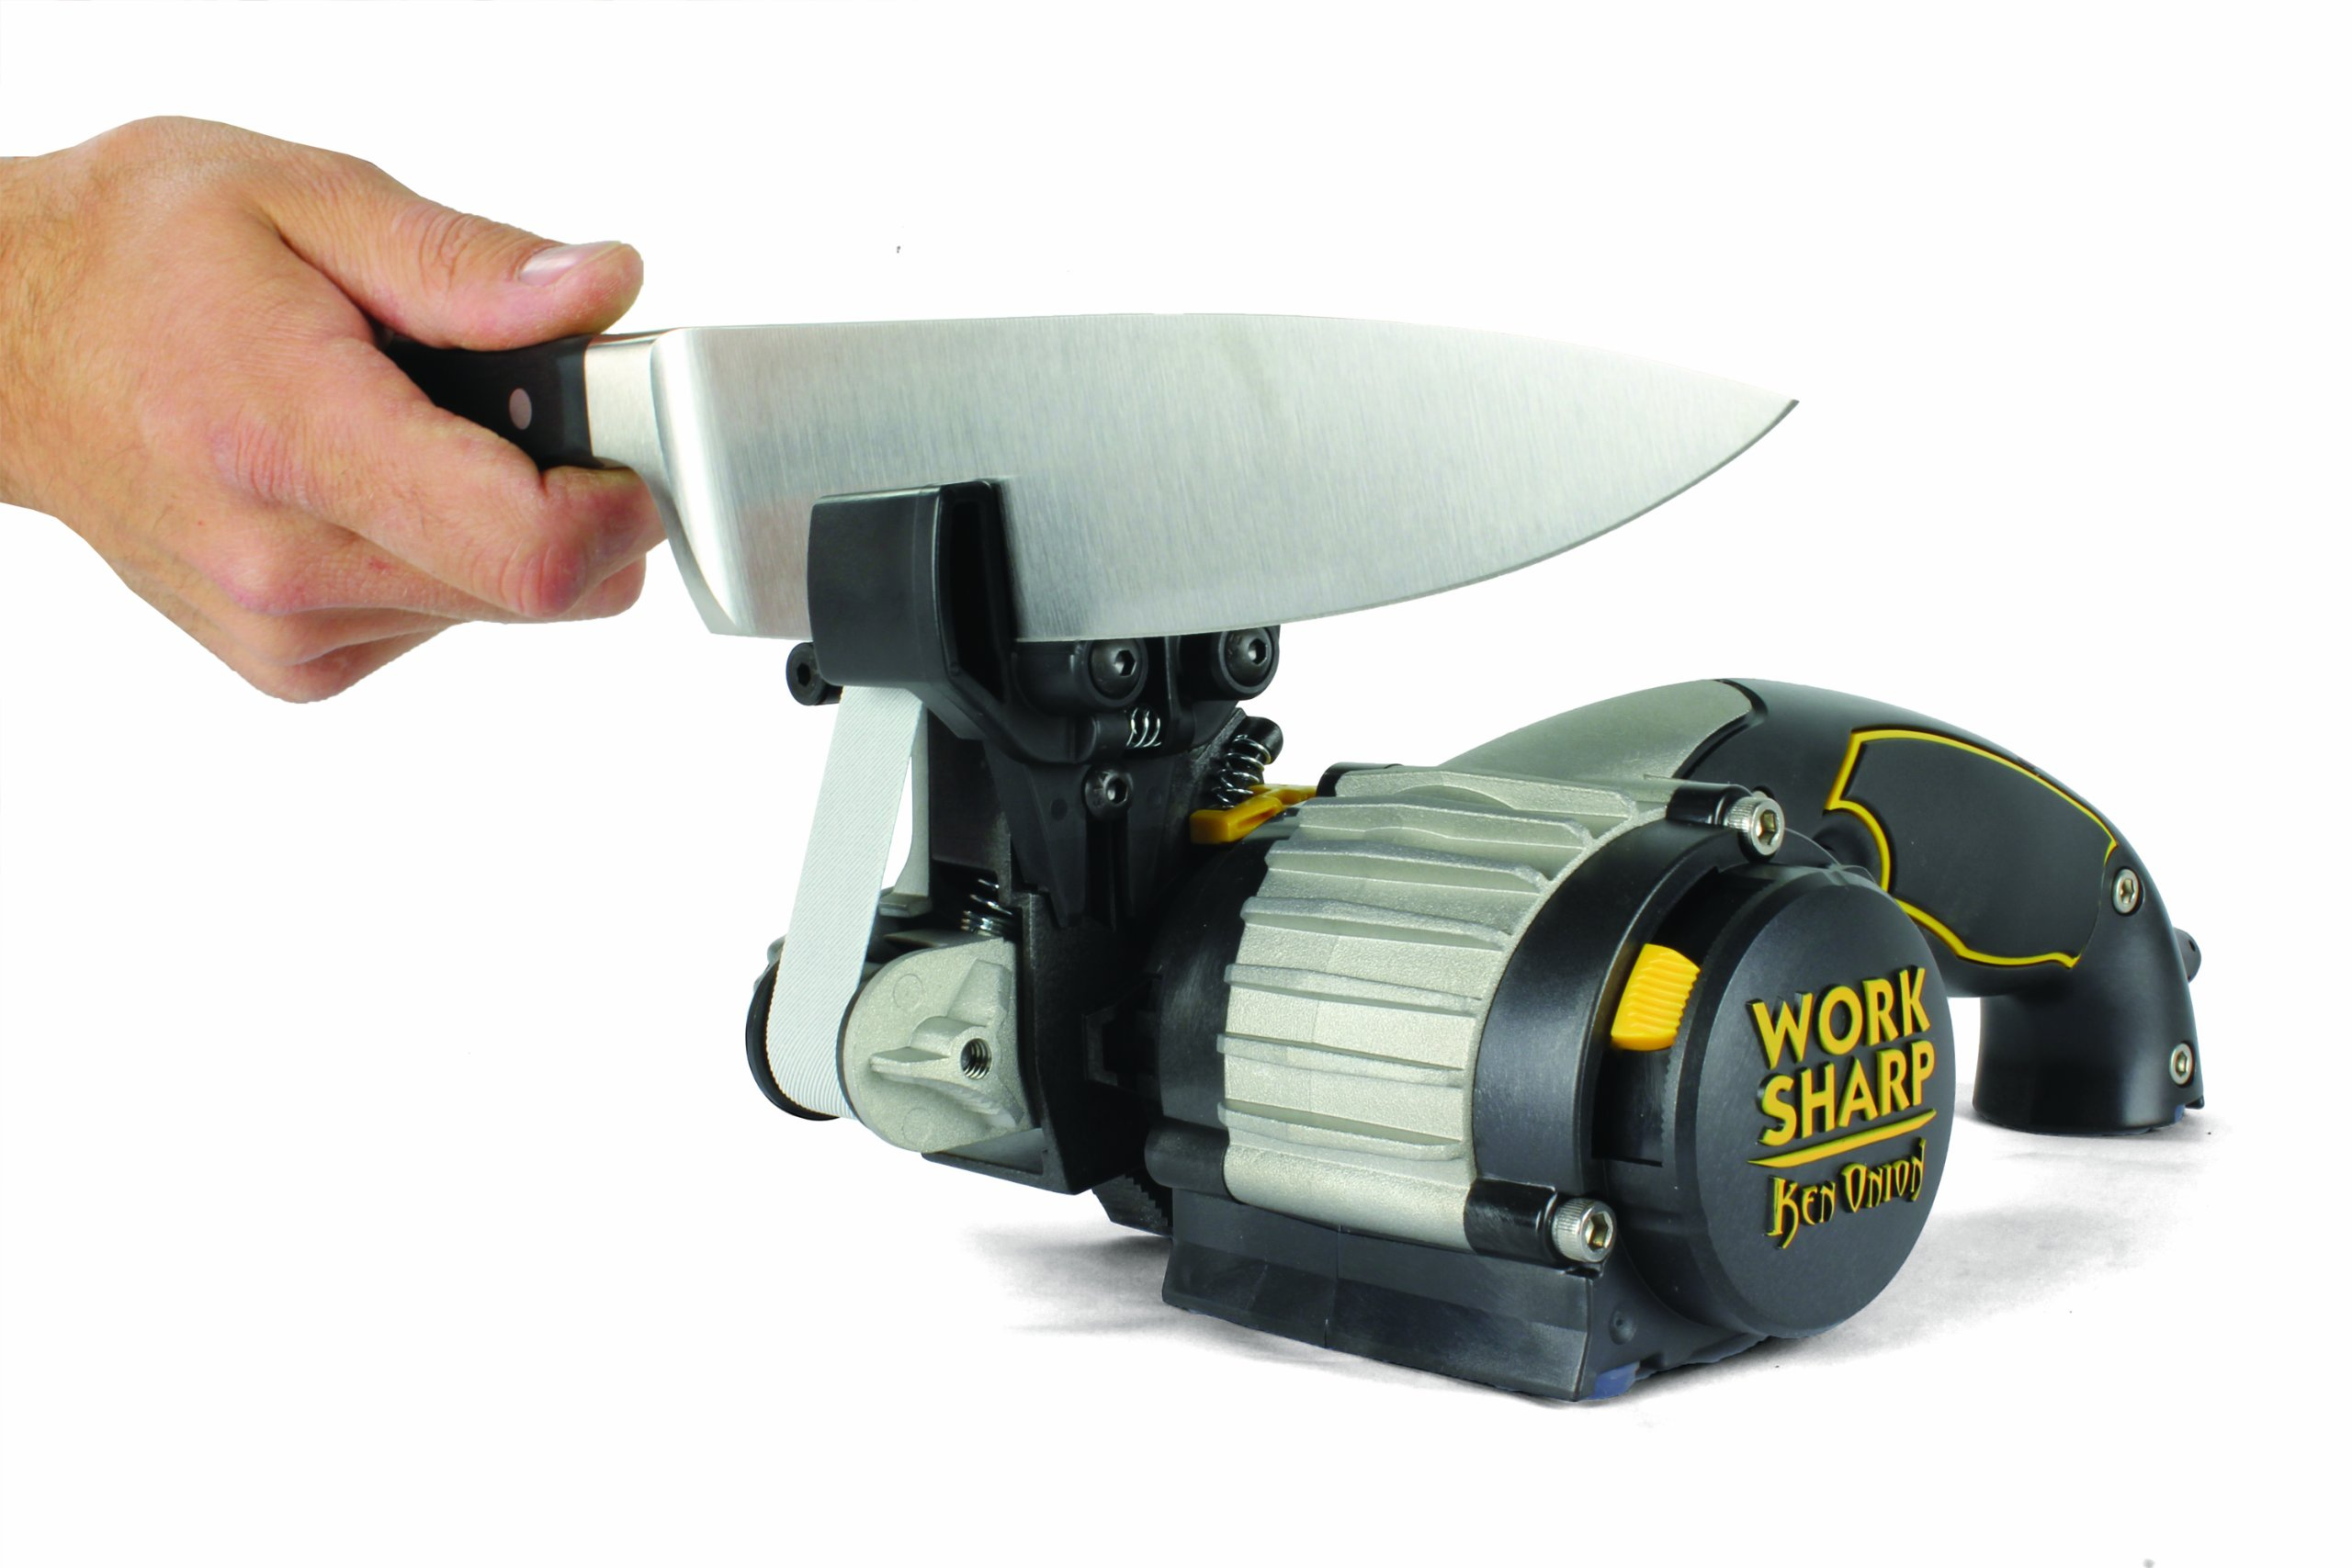 Work Sharp Ken Onion Edition, Fast, Repeatable, & Precision Sharpening from 15° to 30°, Premium Flexible Abrasive Belts, Variable Speed Motor, & Multi-Positioning Sharpening Module by Work Sharp (Image #7)